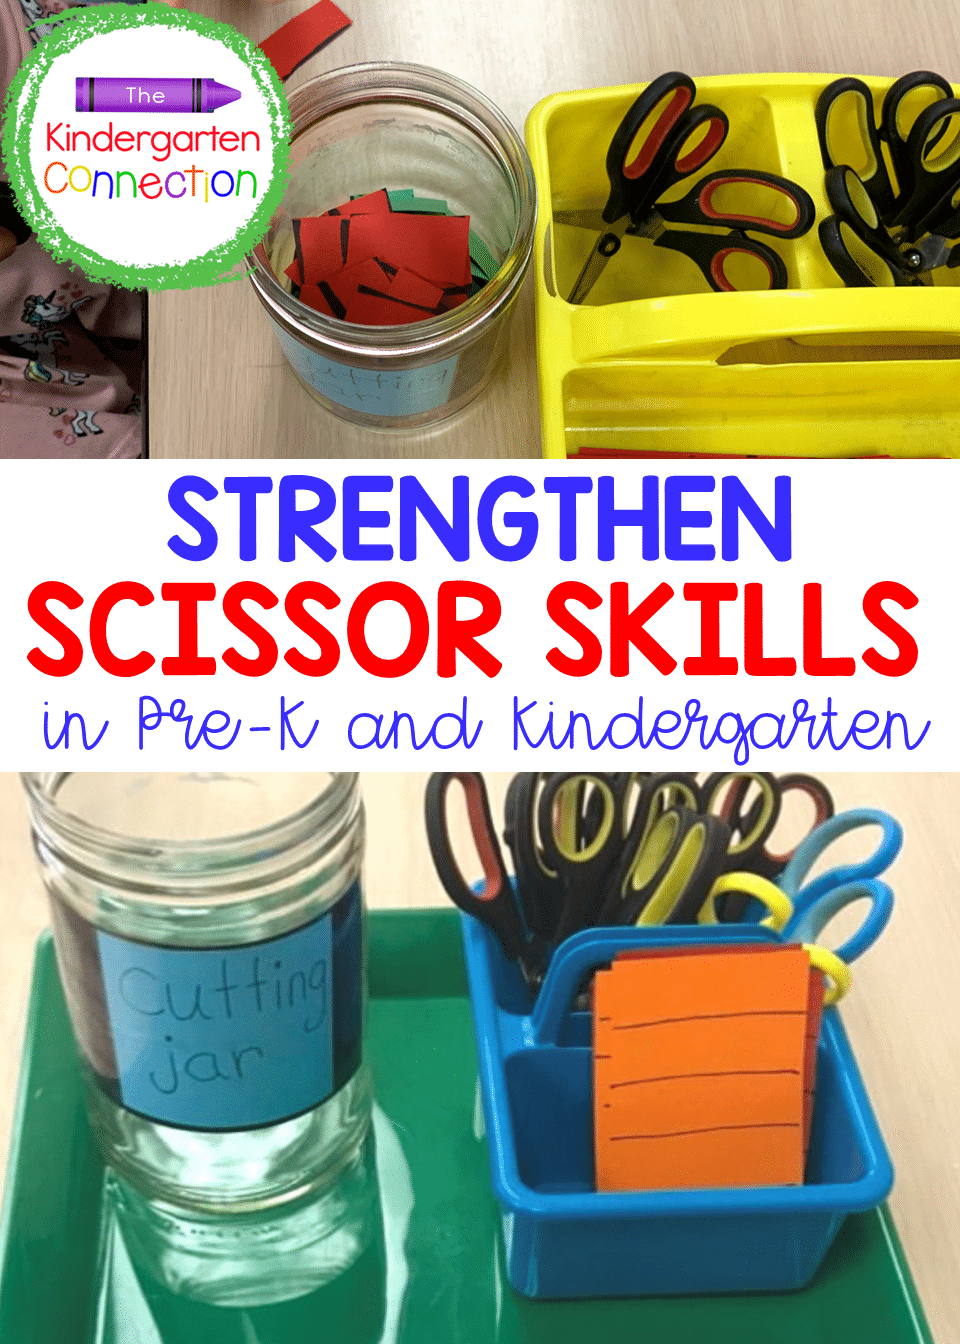 The Cutting Jar is a quick, but effective activity for simple scissor skills practice in Pre-K and Kindergarten!